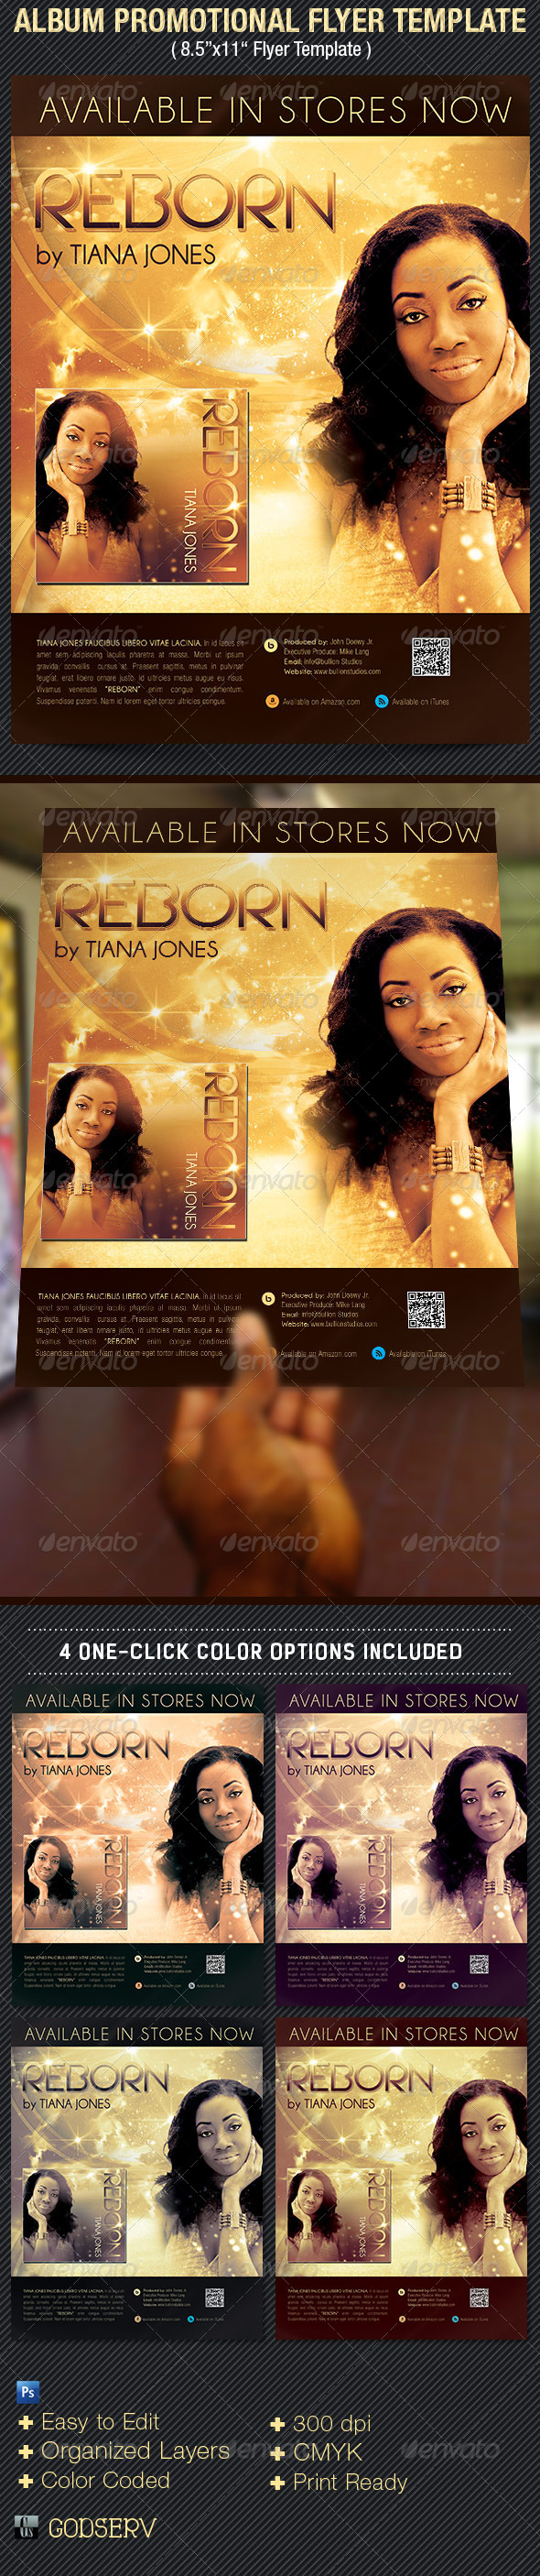 Album Release Promotional Flyer Template - Flyers Print Templates